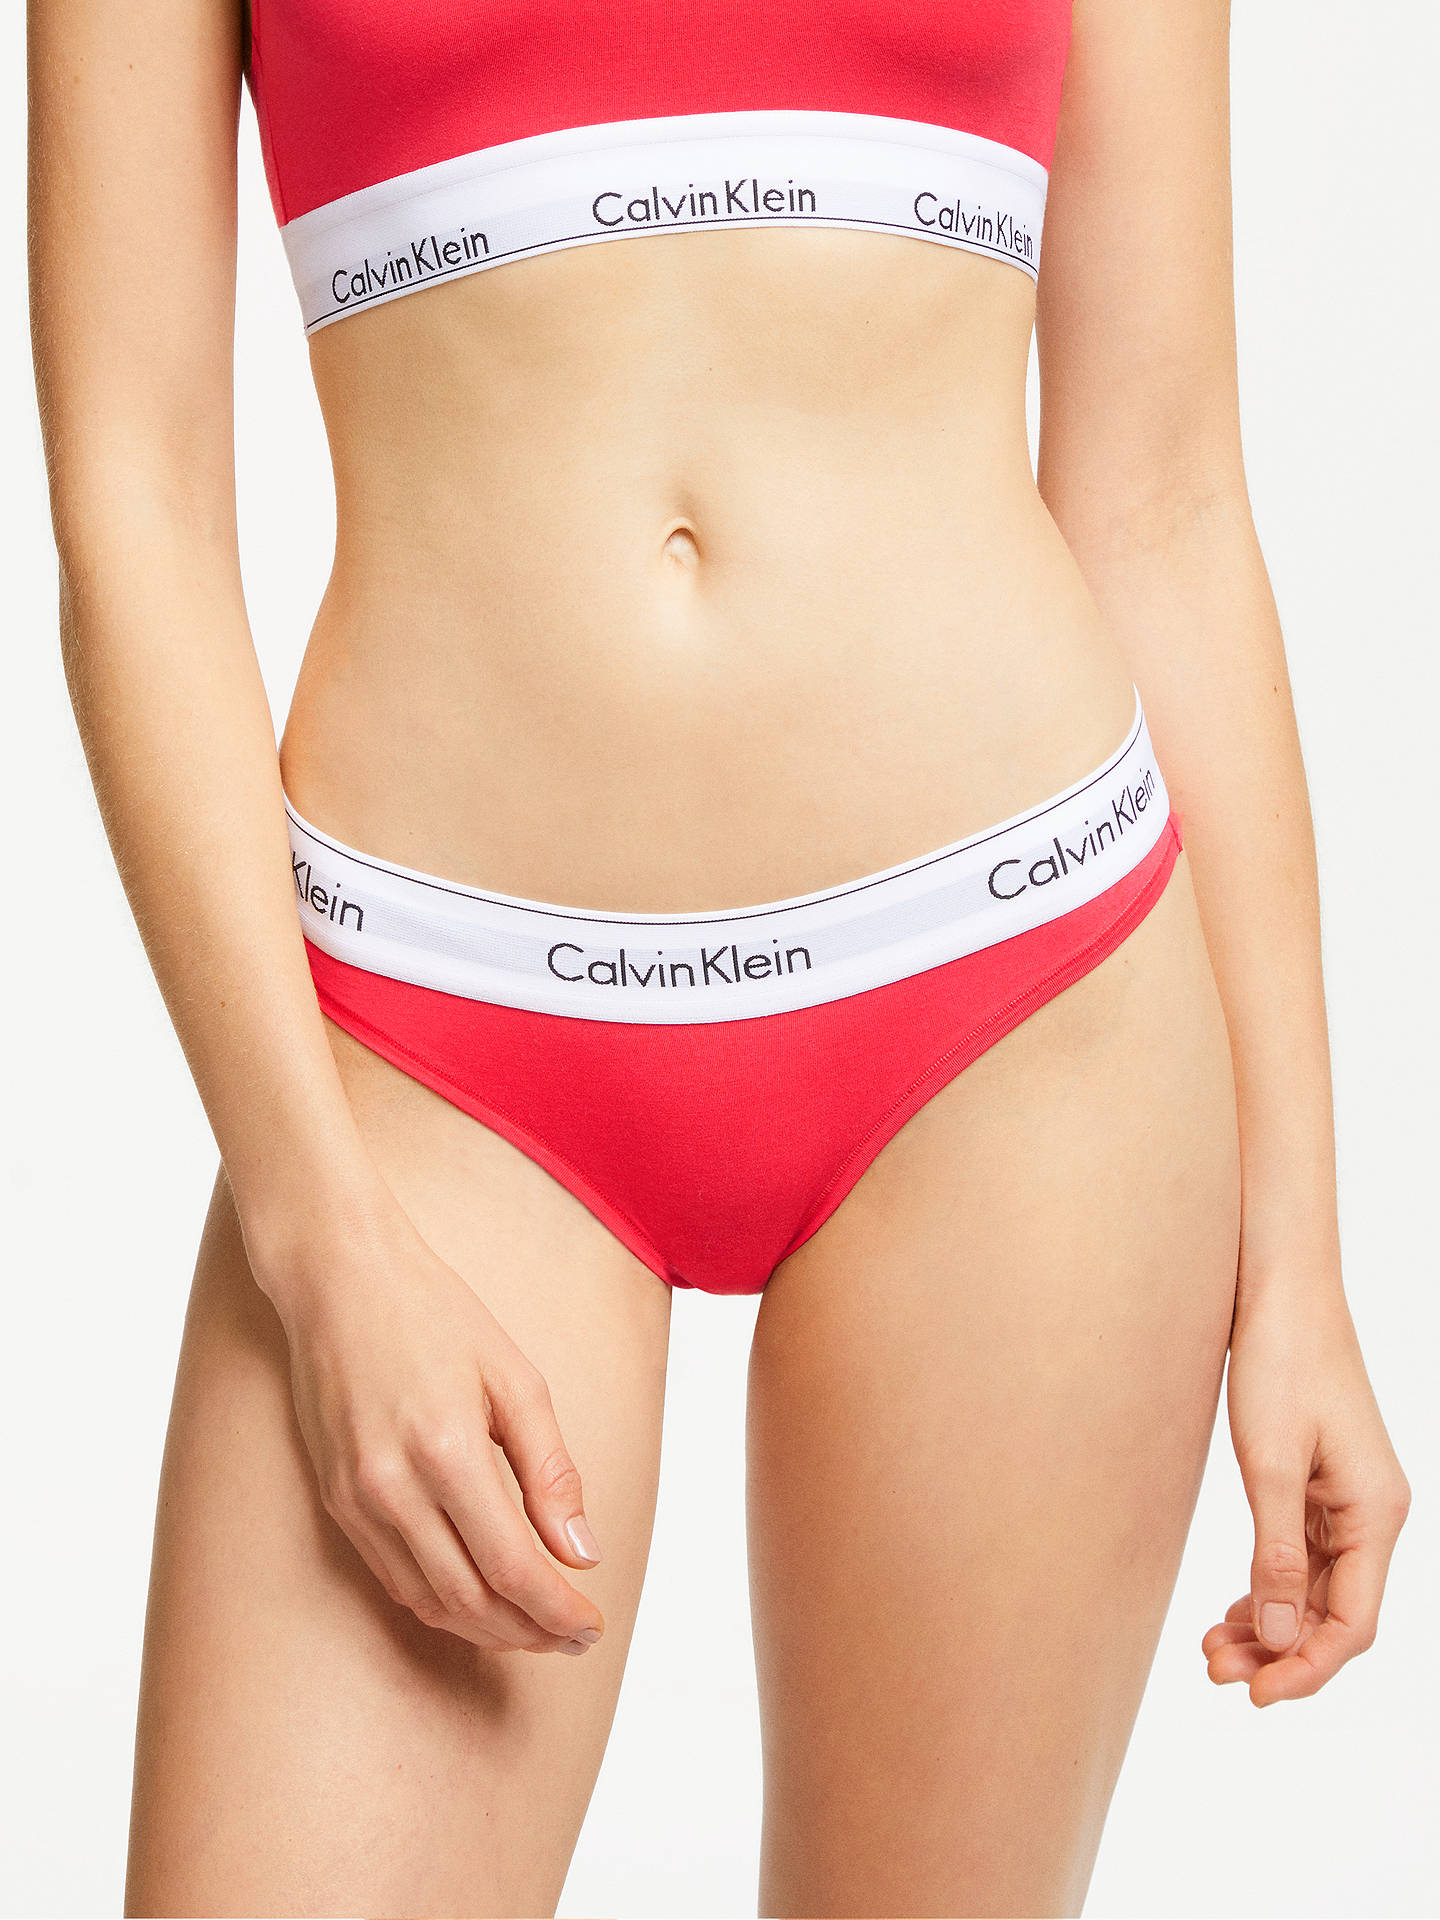 new concept 8be09 760fc Calvin Klein Modern Cotton Bikini Briefs, Fire Lily